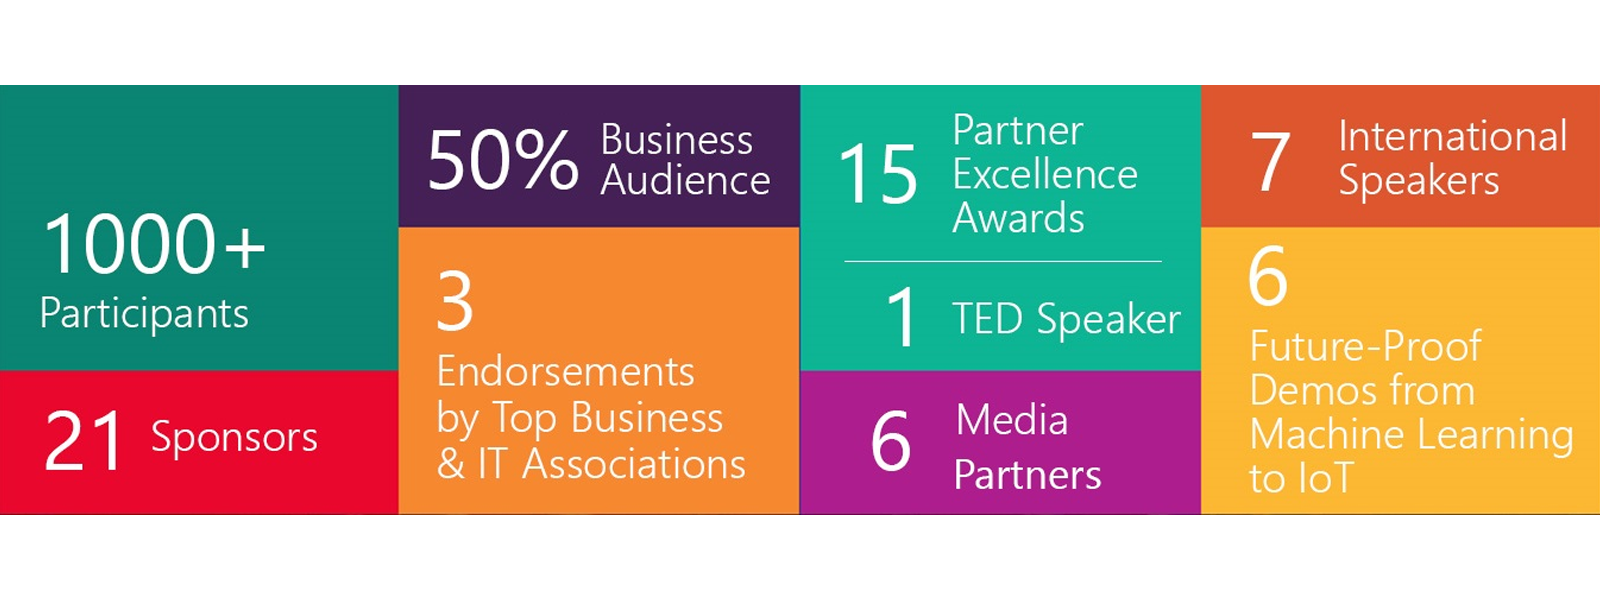 Facts and Stats from the 2nd Microsoft Summit